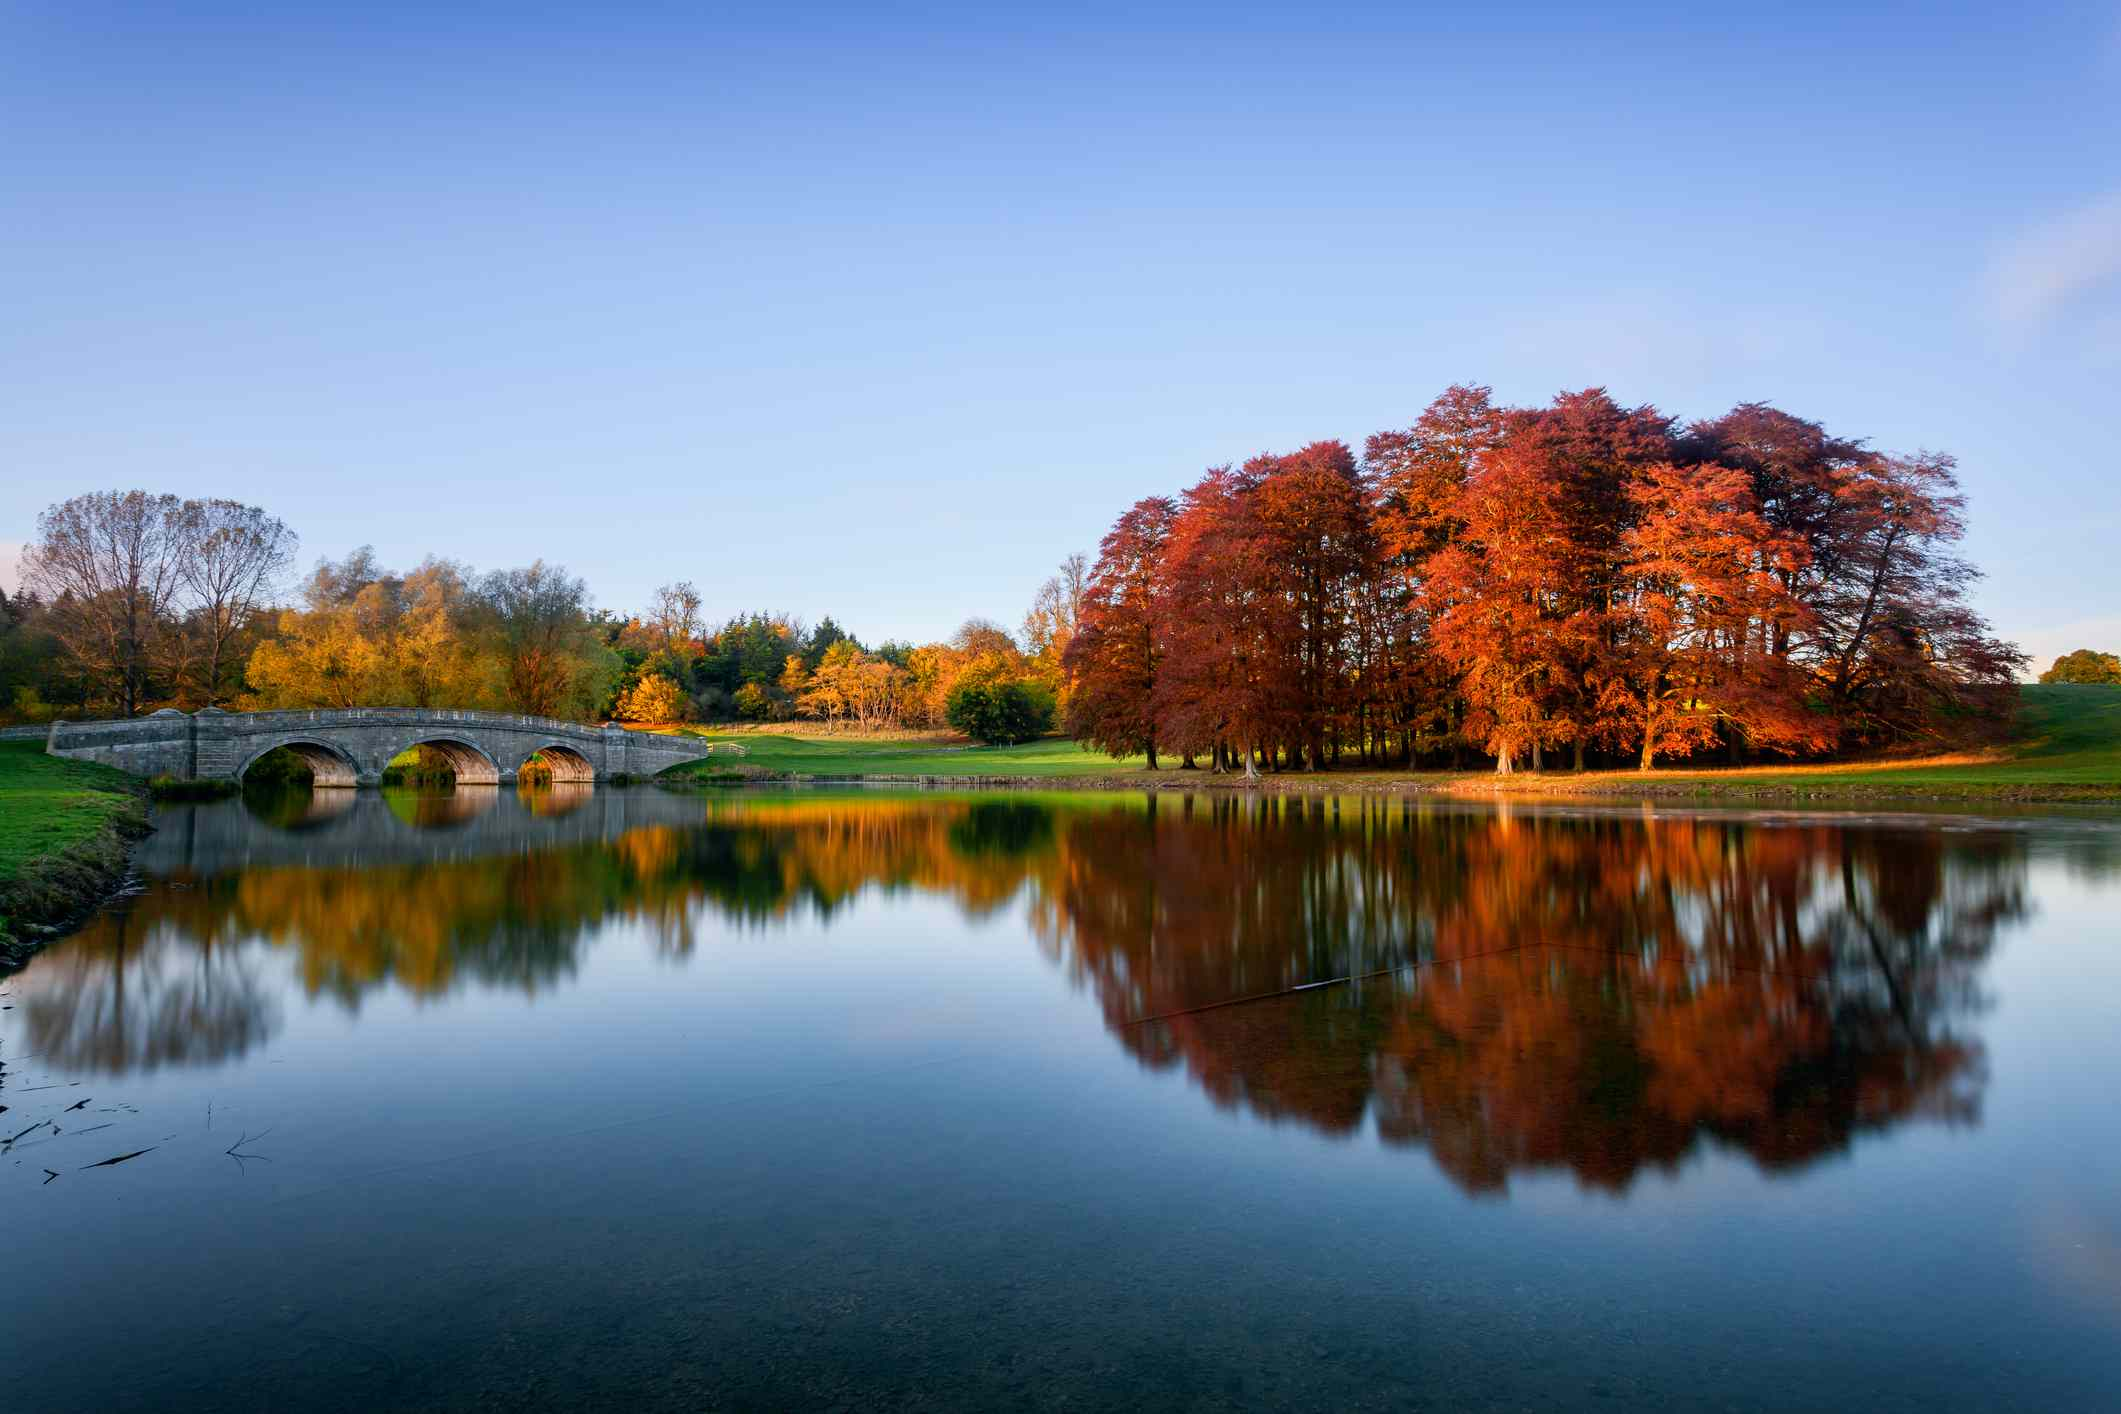 A clear, blue sky above large autumn trees in shades of orange and red reflected in the calm waters of the River Glyme, as it runs through the Blenheim Park Estate in Woodstock, Oxfordshire